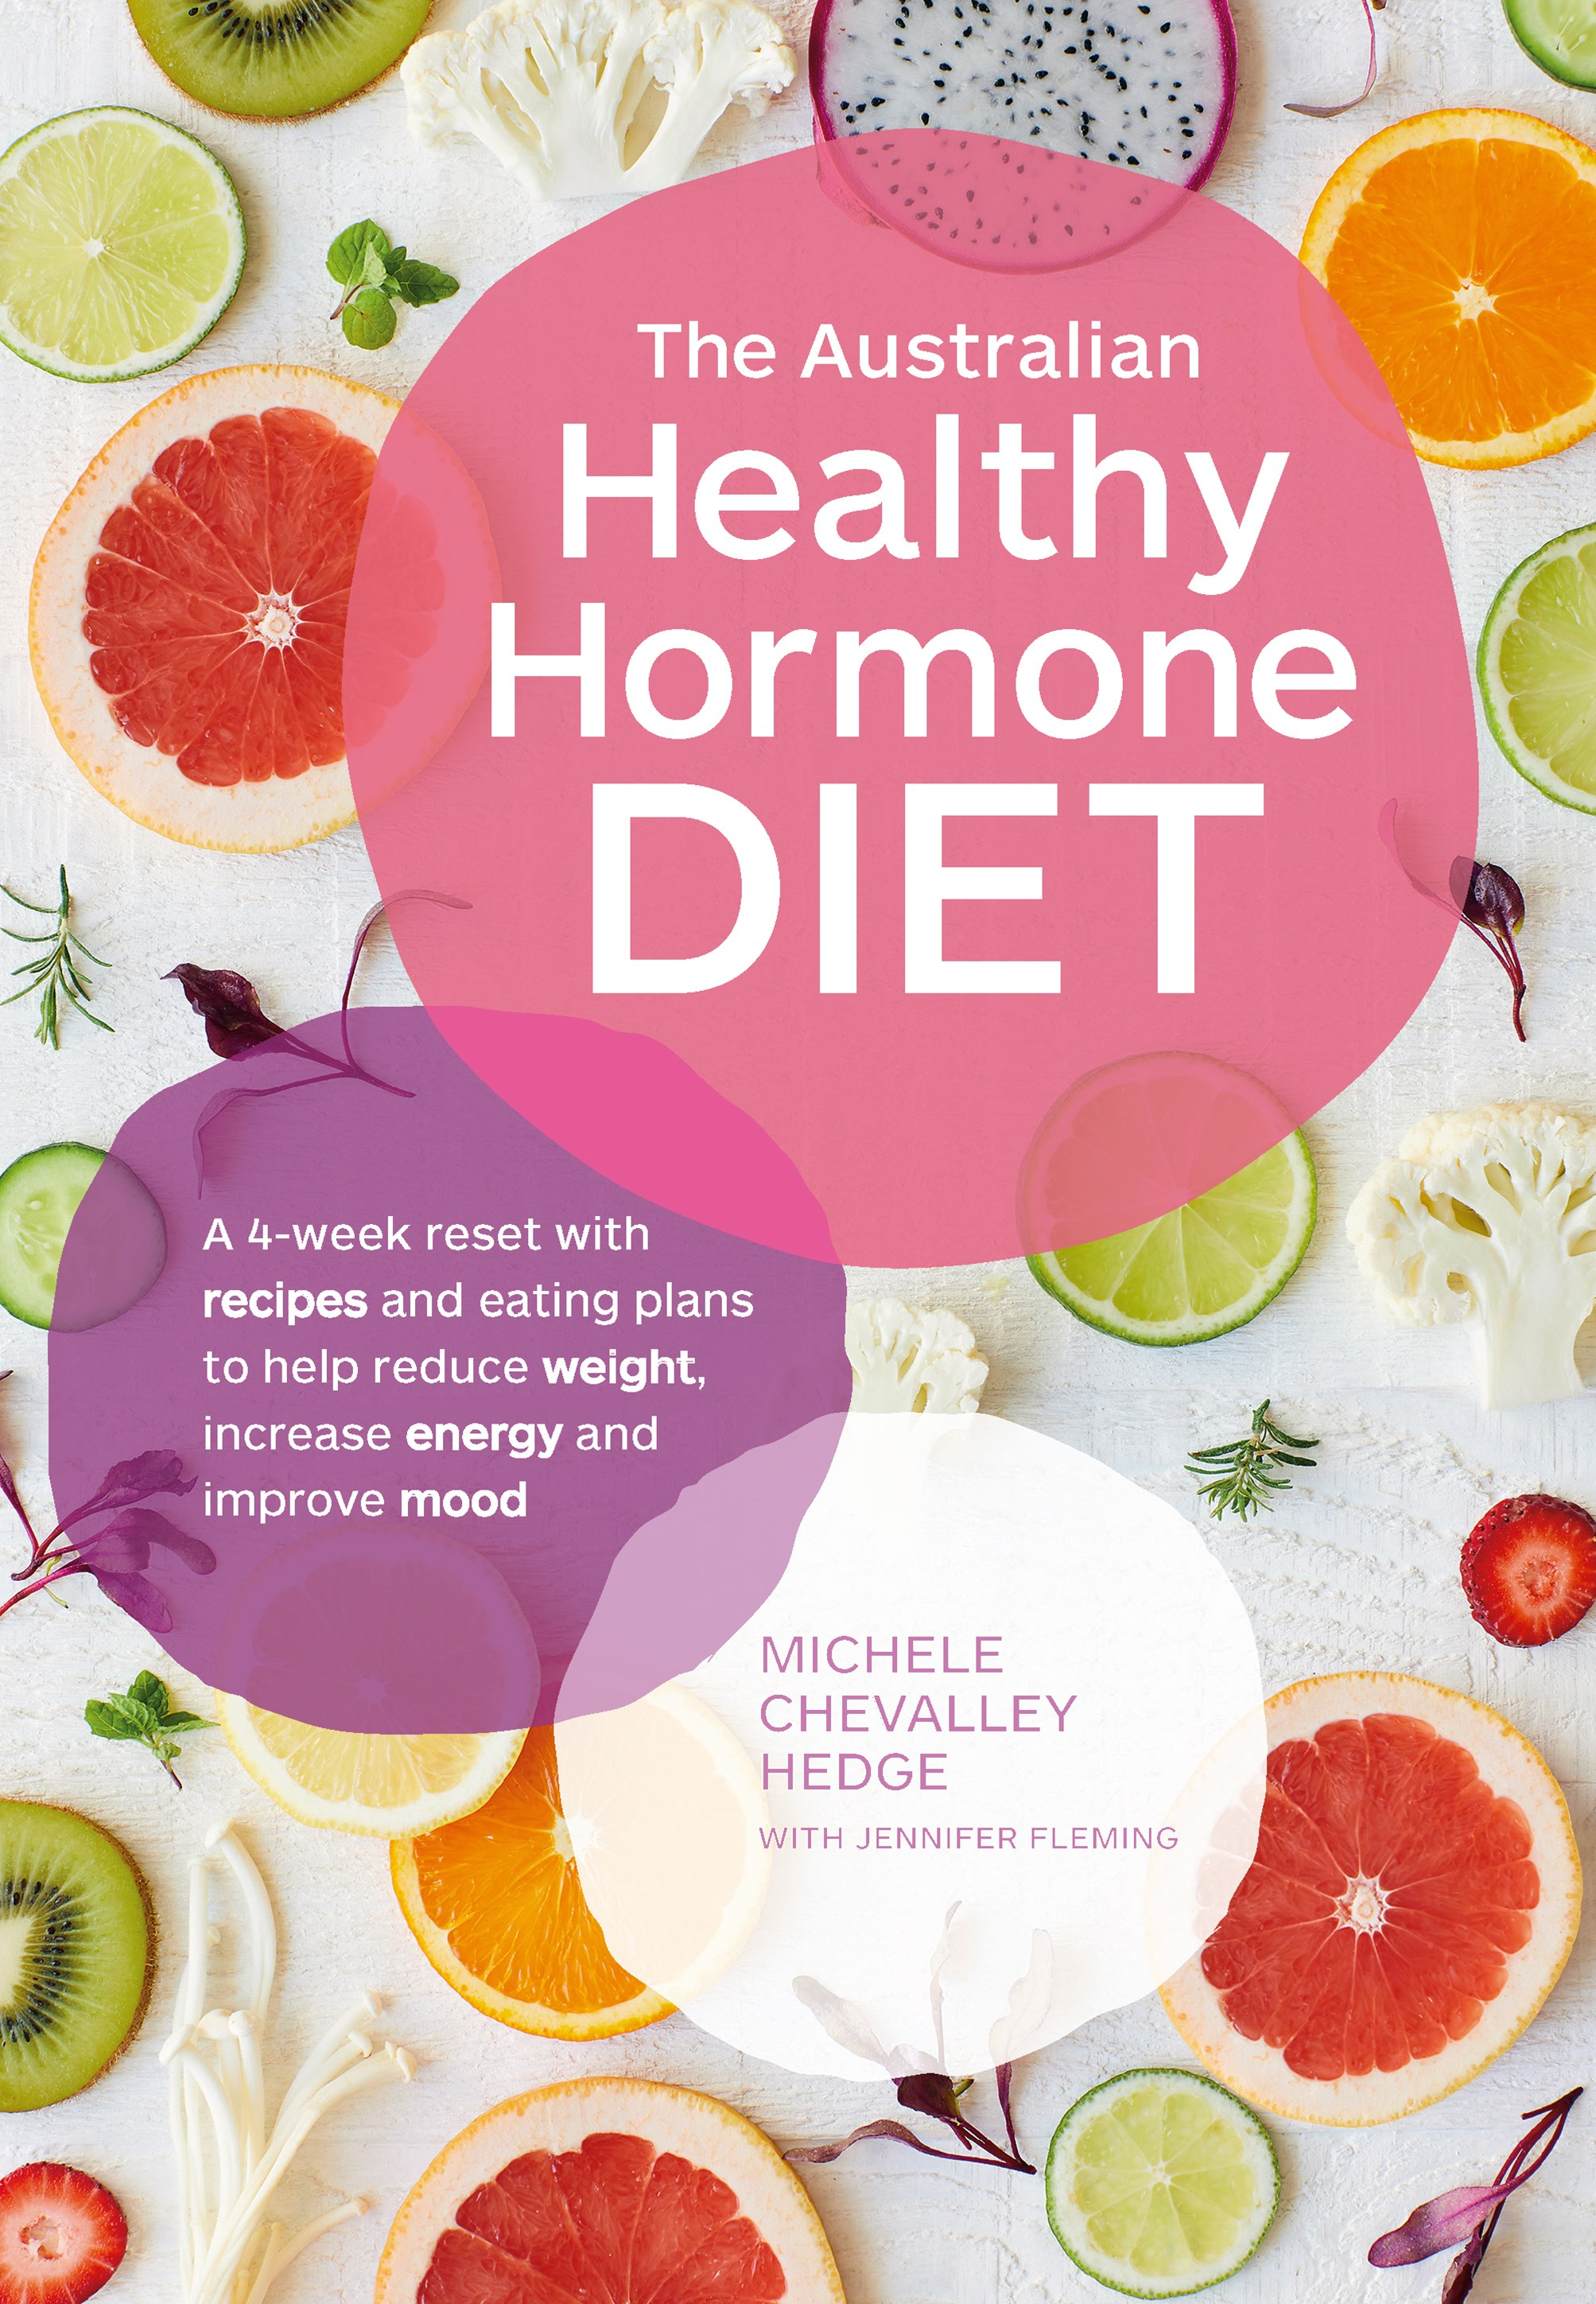 The Australian Healthy Hormone Diet